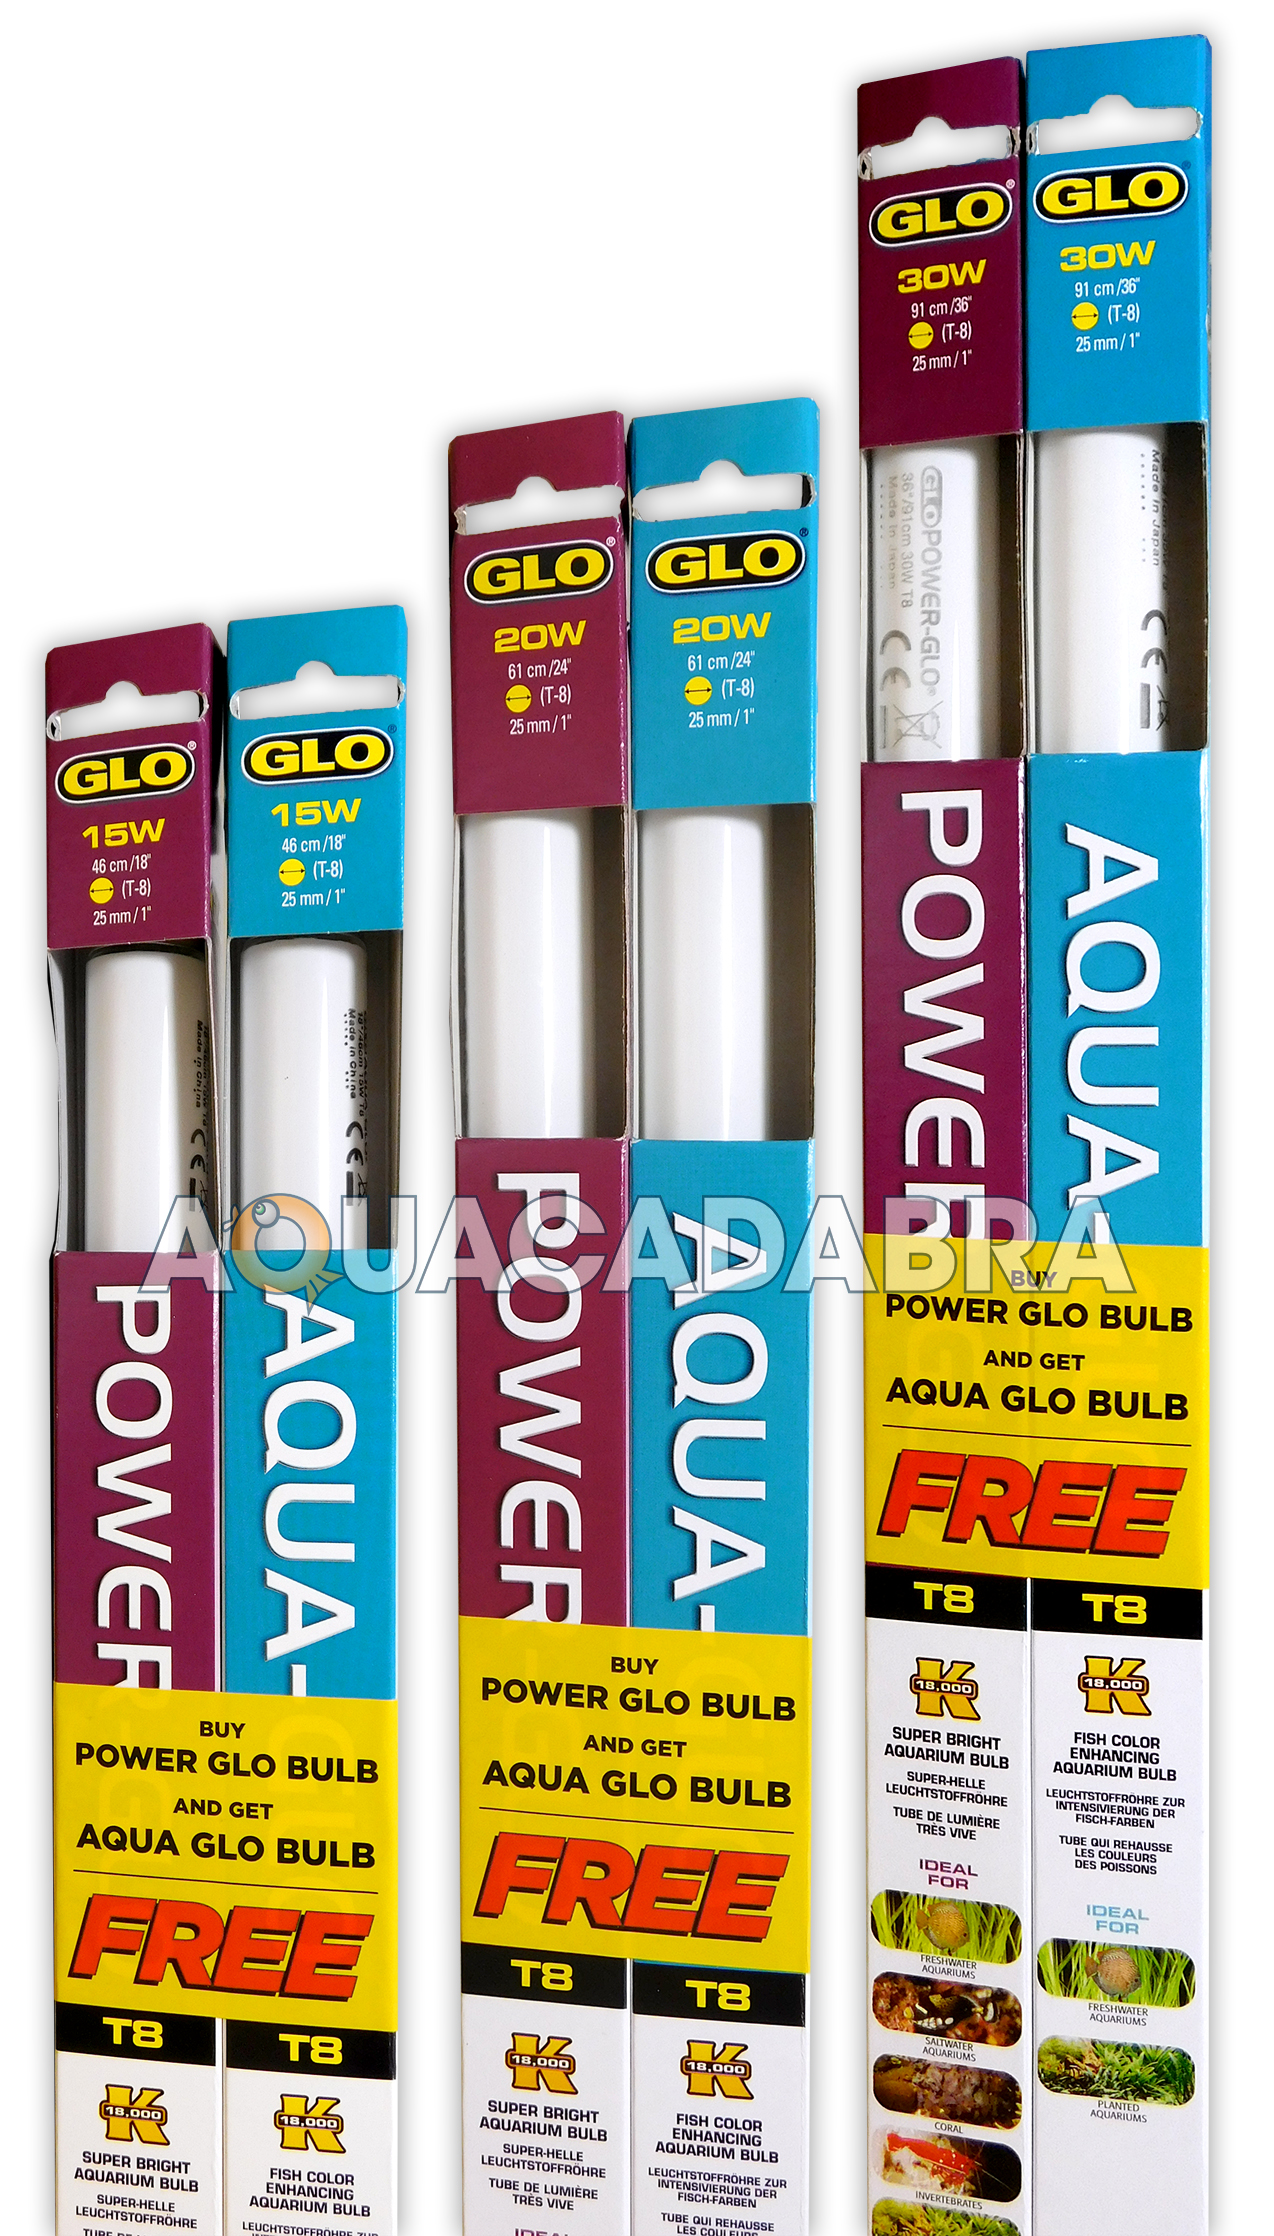 Power Glo With Free Aqua Glo 30w Light Bulbs T8 Lighting